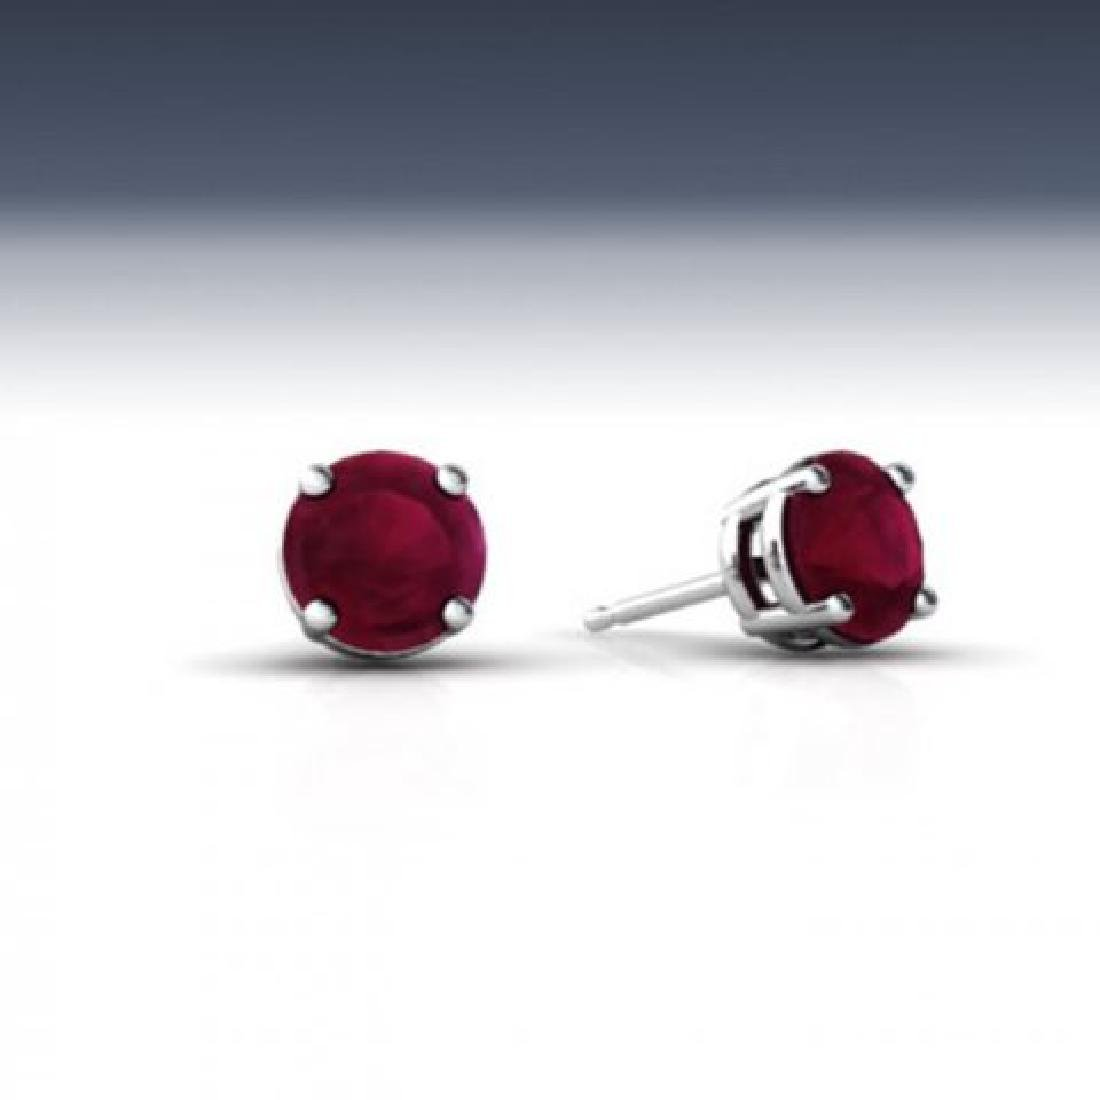 Stud Ruby Earrings 4.35 Carat 14k White Gold